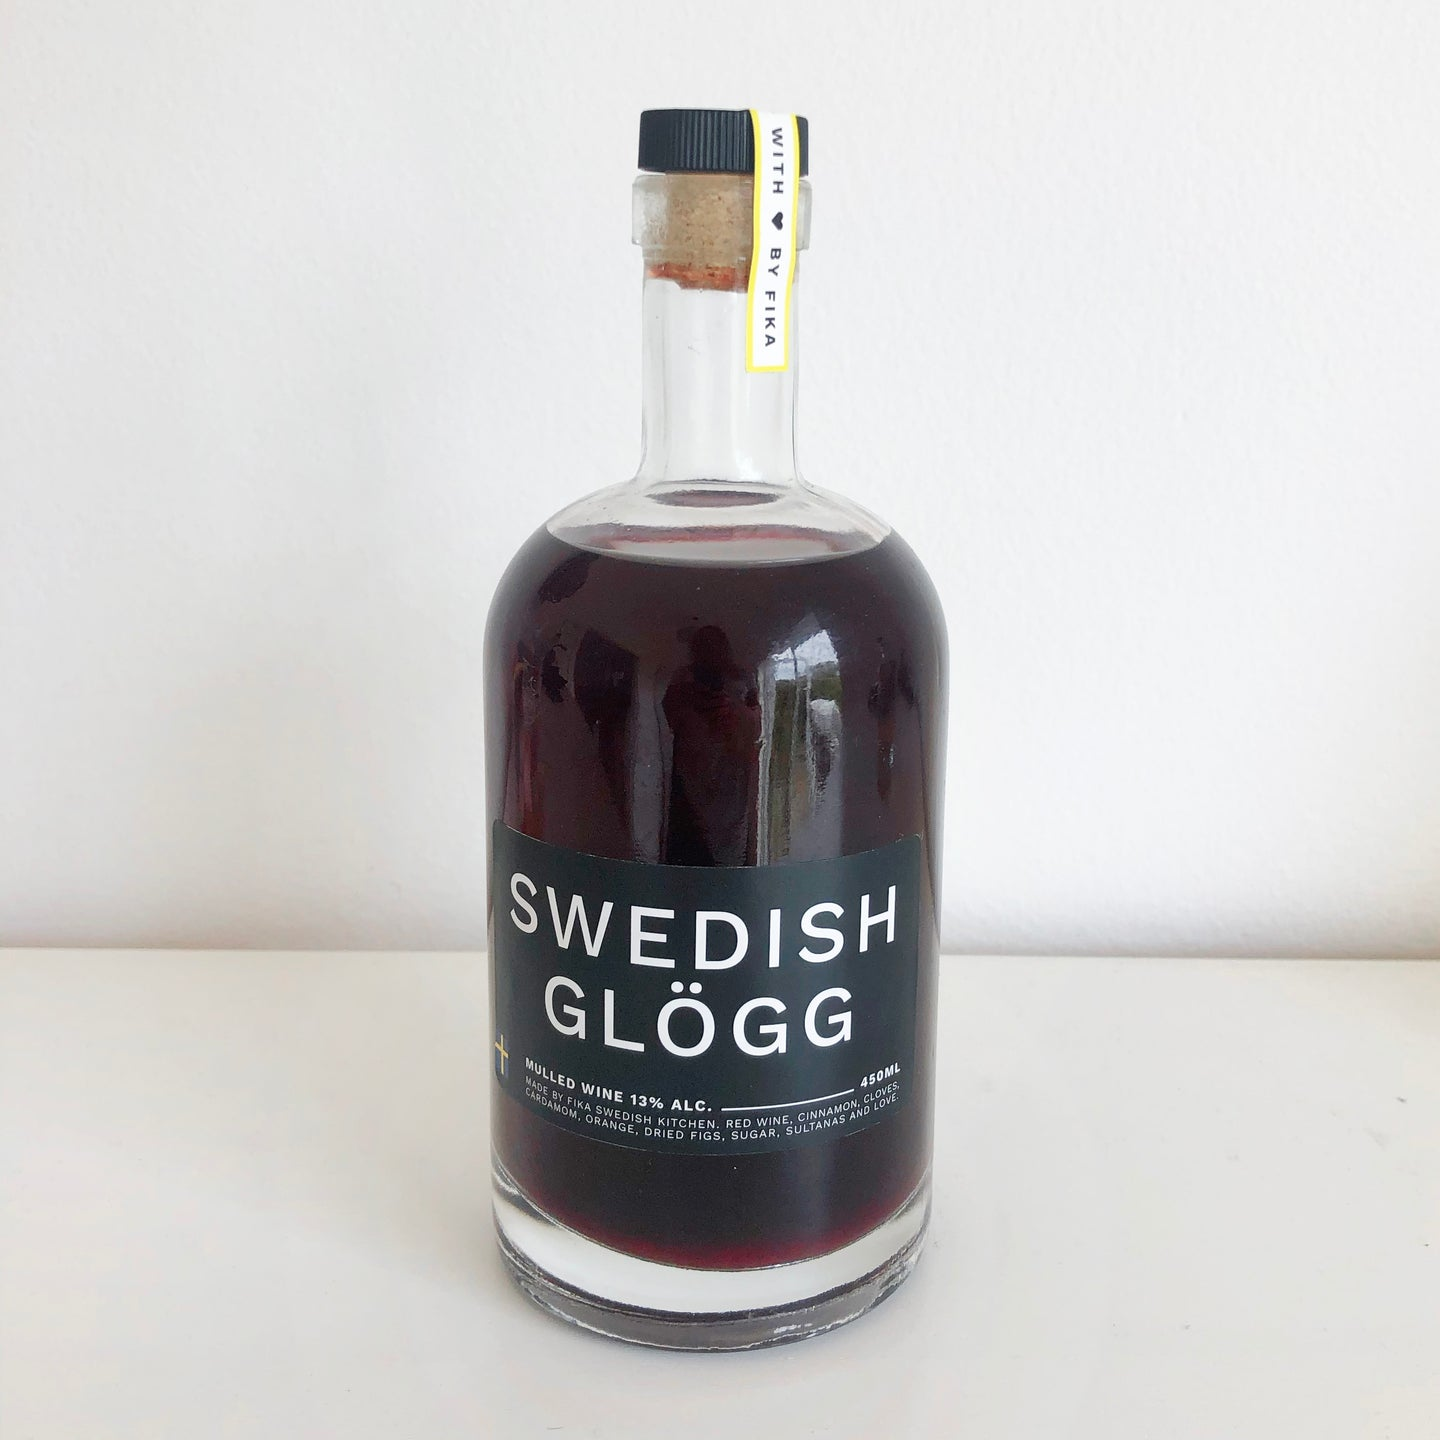 Fika's Mulled wine - Alcoholic Glögg.